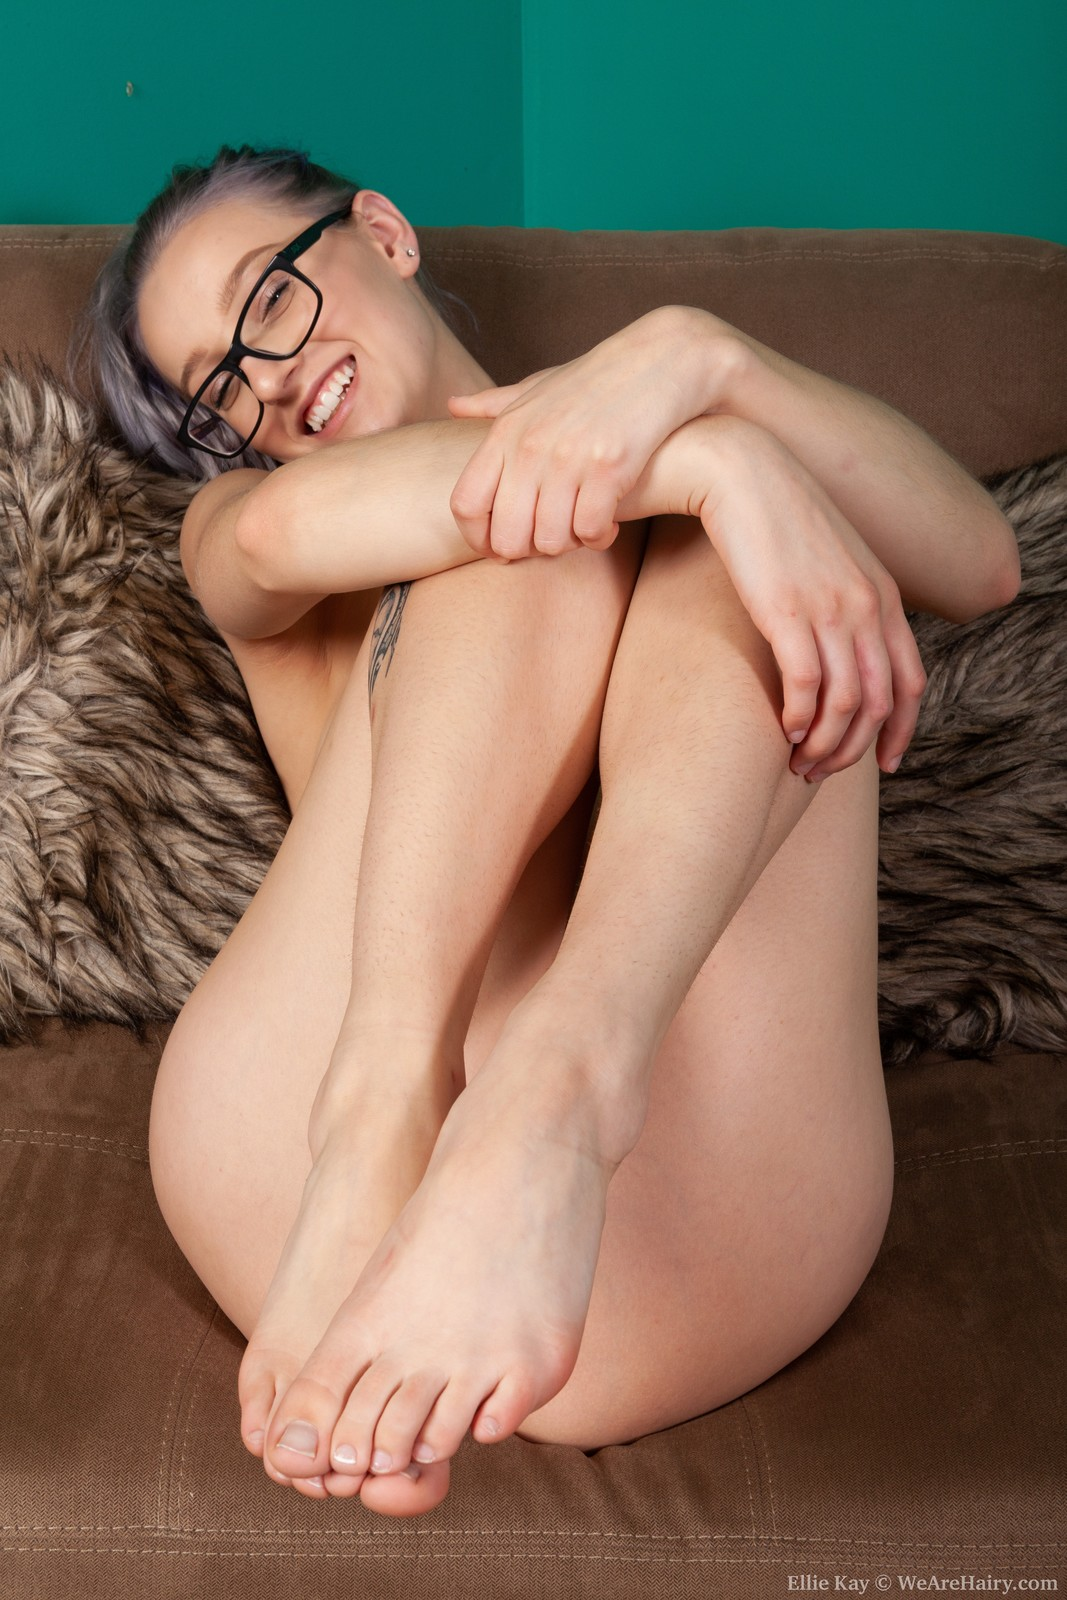 ellie kay enjoys stripping naked the hairy lady blog